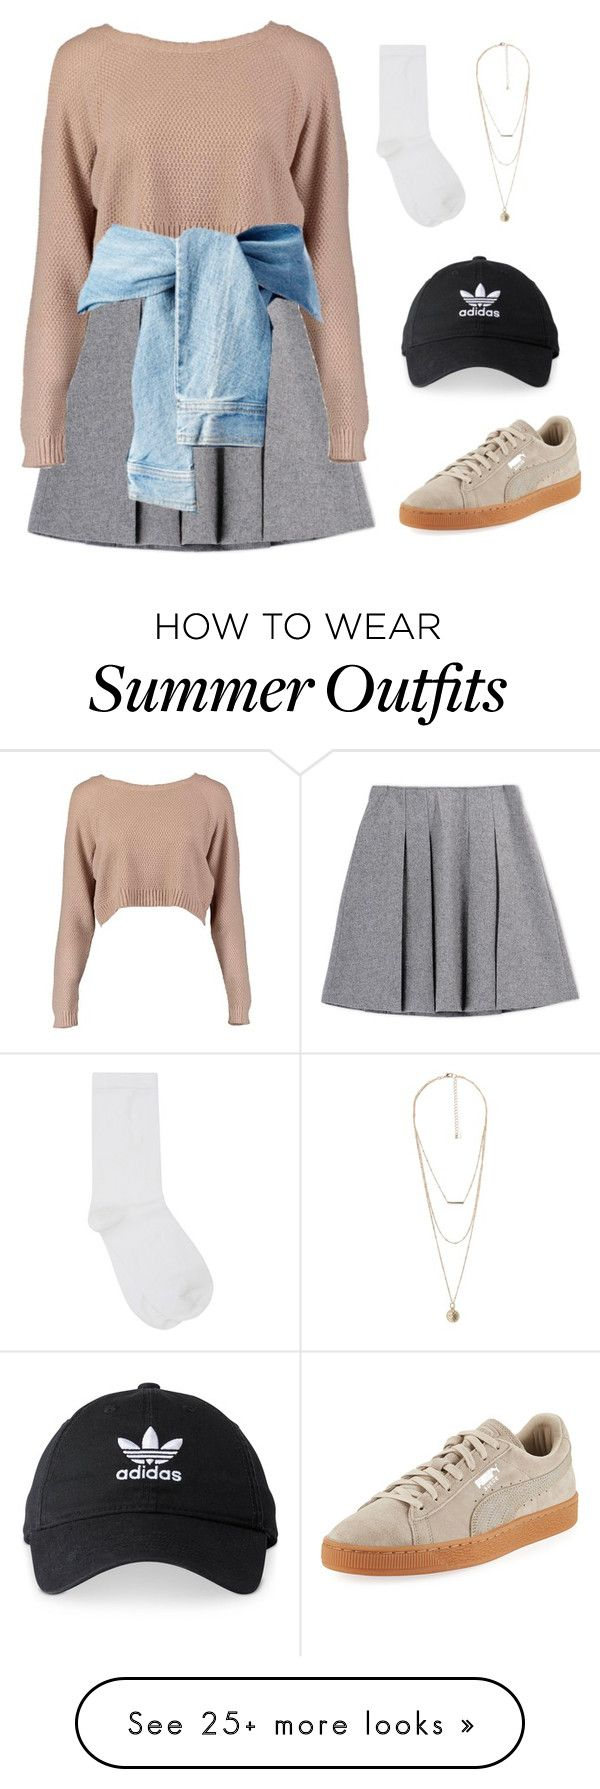 """Outfit 182"" by kittylovesxoxo on Polyvore featuring Fall Winter Spring Summer, Boohoo, M&Co, MANGO, Puma and adidas"